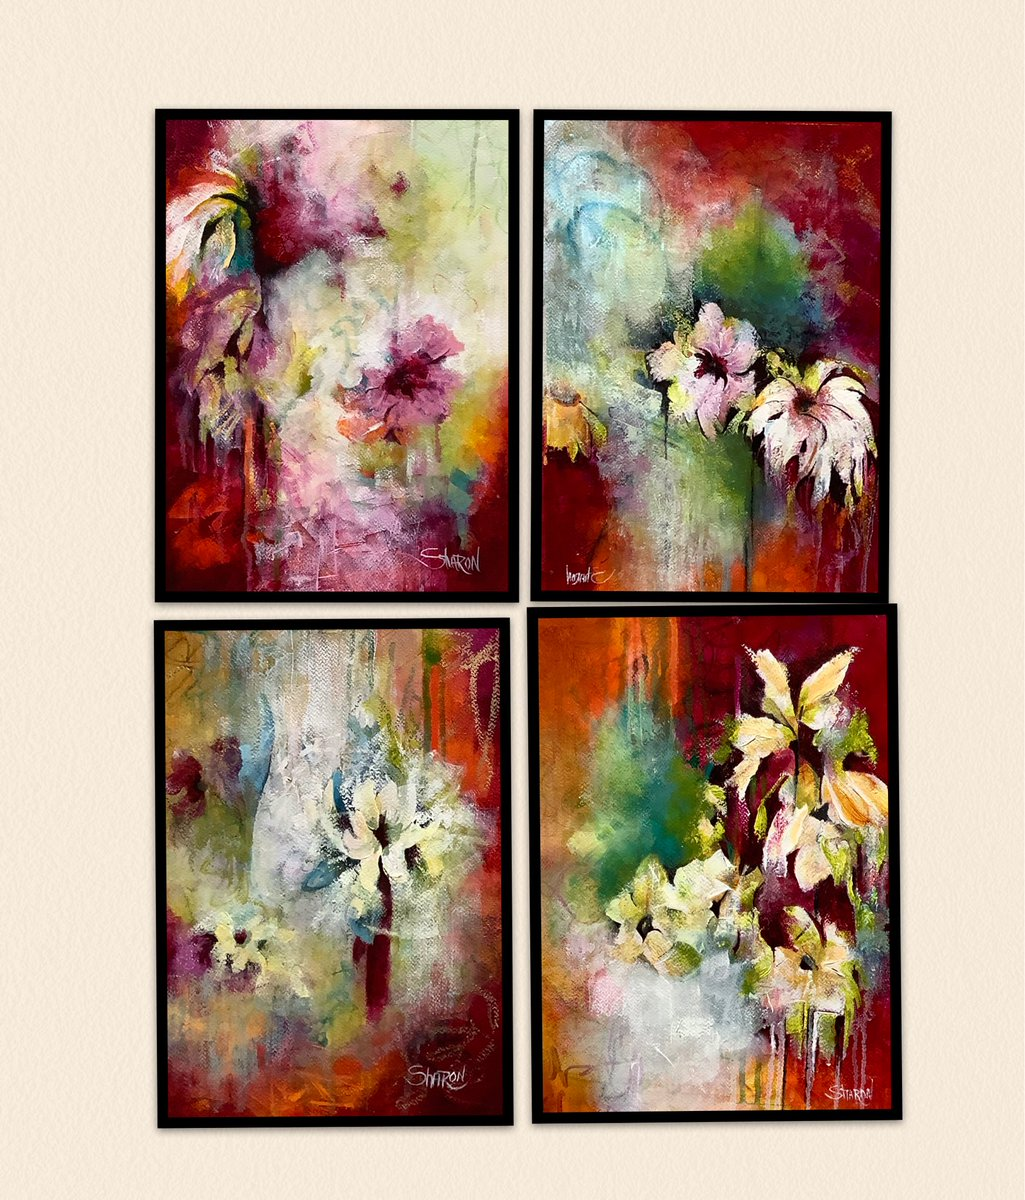 All four of these have SOLD together! I just love how the look hanging with each other!! http://www.sharongrimesart.com  #art #artist #fineart #abstractart #abstractpainting #artlovers #artcollectors #artgalleries #artmuseums #artcurators #fineartcollectors #finearts #abstractpic.twitter.com/sHM2Pl7l8L